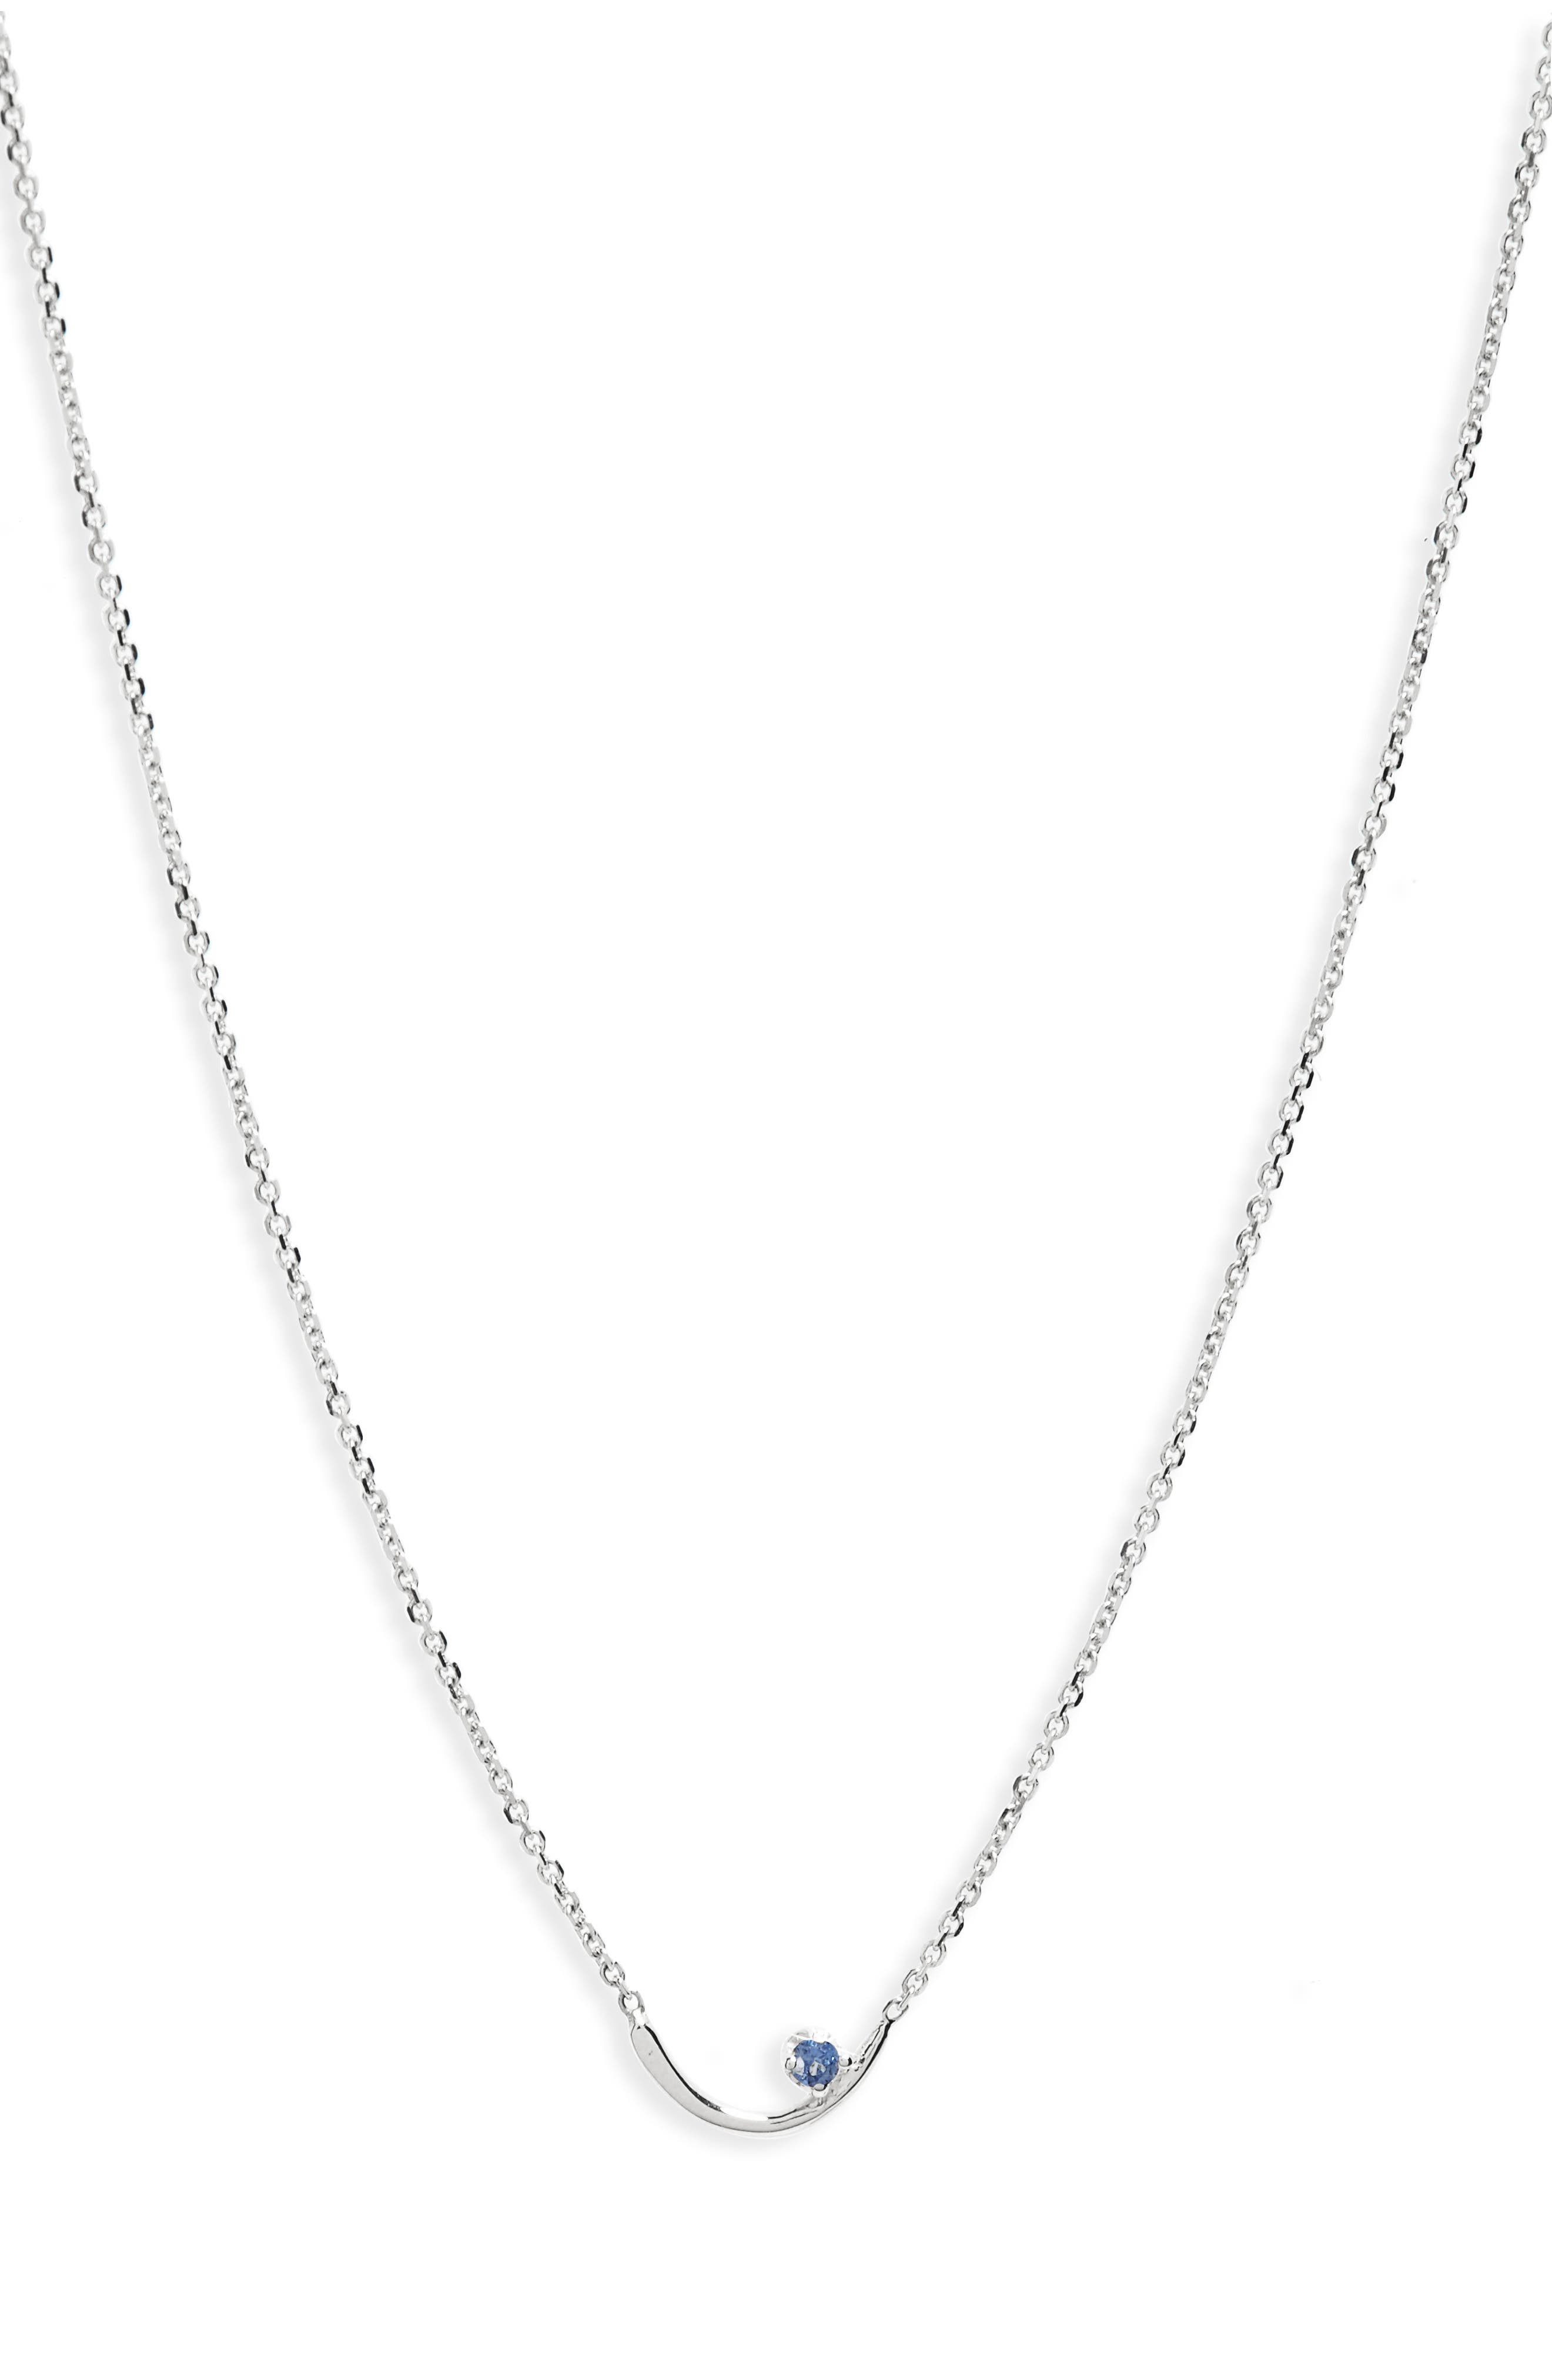 Arc Lineage Necklace,                         Main,                         color, STERLING SILVER/LIGHT SAPPHIRE